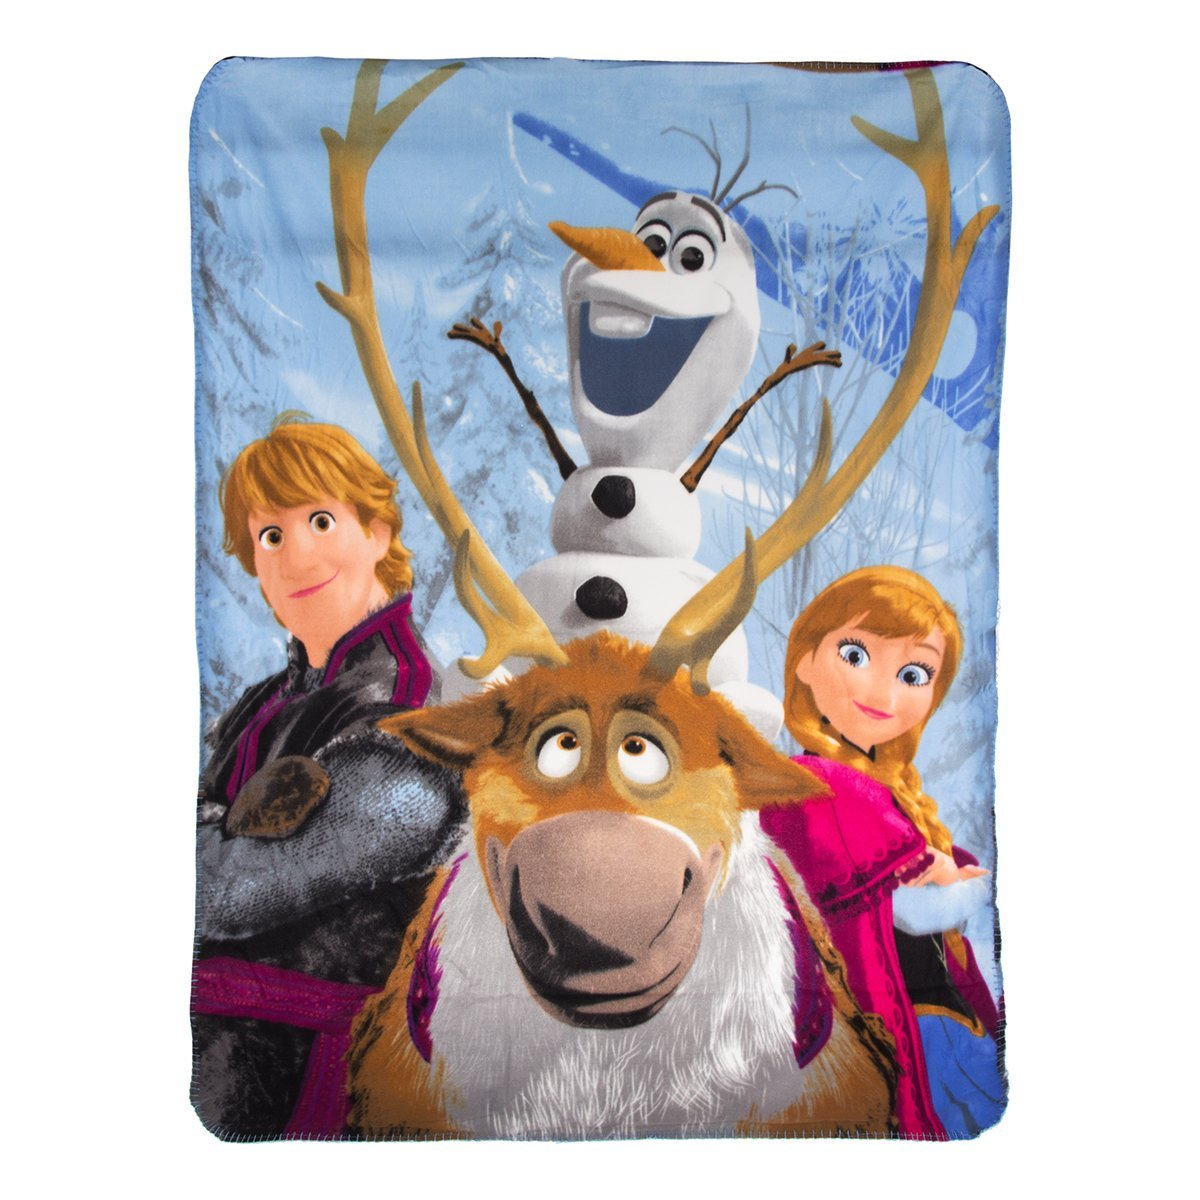 Disney's Frozen, ''Out in The Cold'' Fleece Throw Blanket, 46'' x 60'', Multi Color by Disney